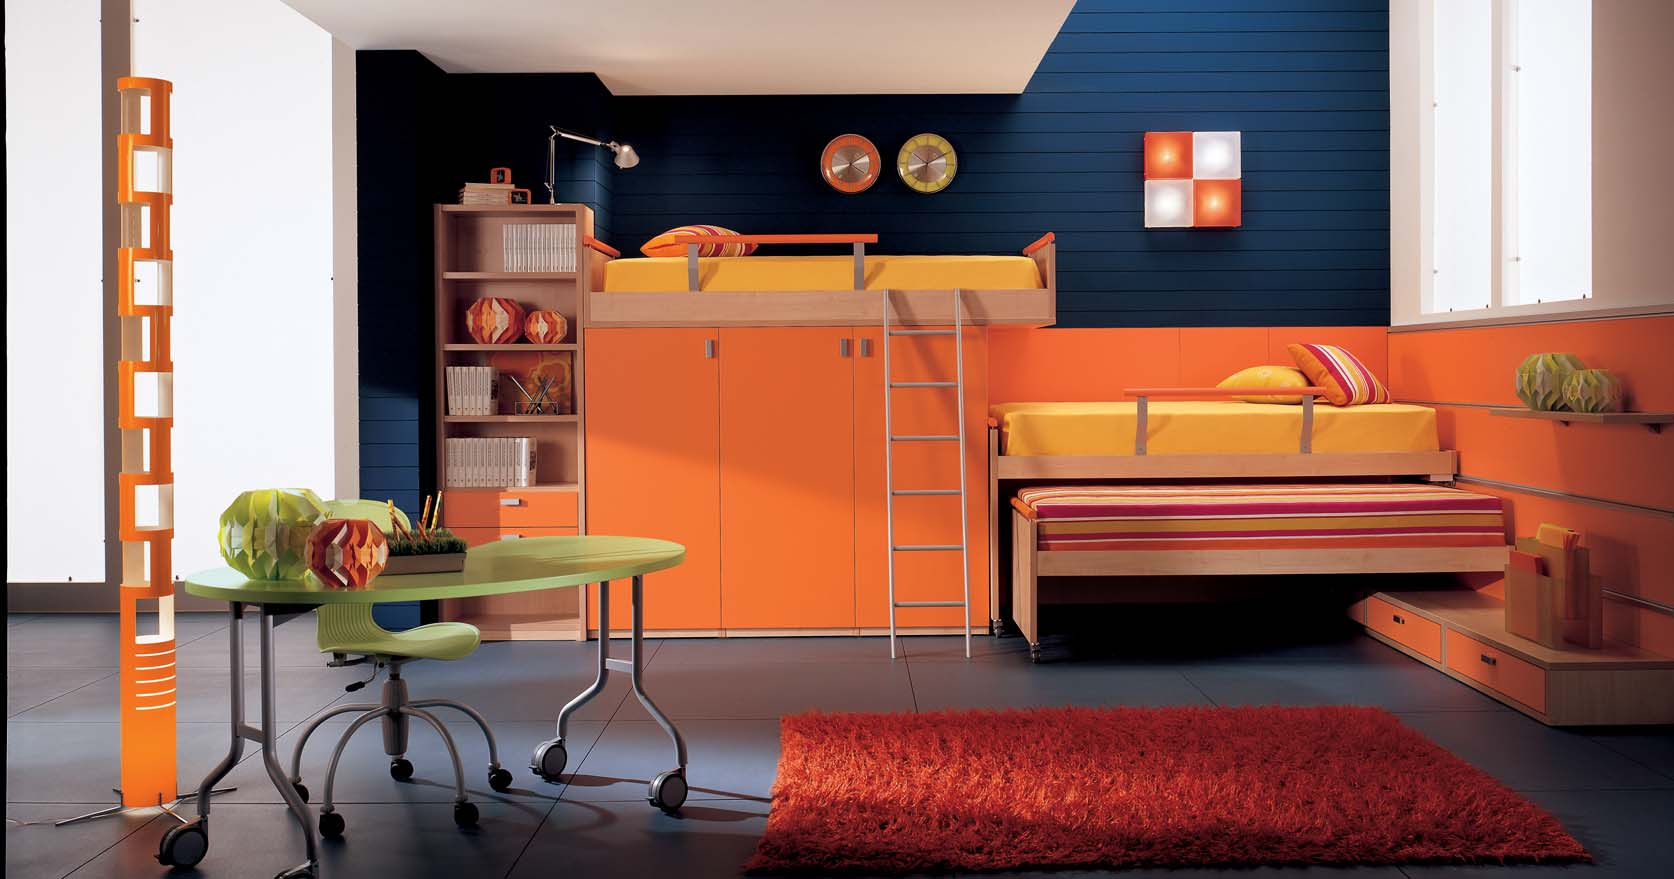 Magnificent Home » Kids Bedroom Design by BERLONI » Kids Bedroom Interior Design 1674 x 879 · 114 kB · jpeg